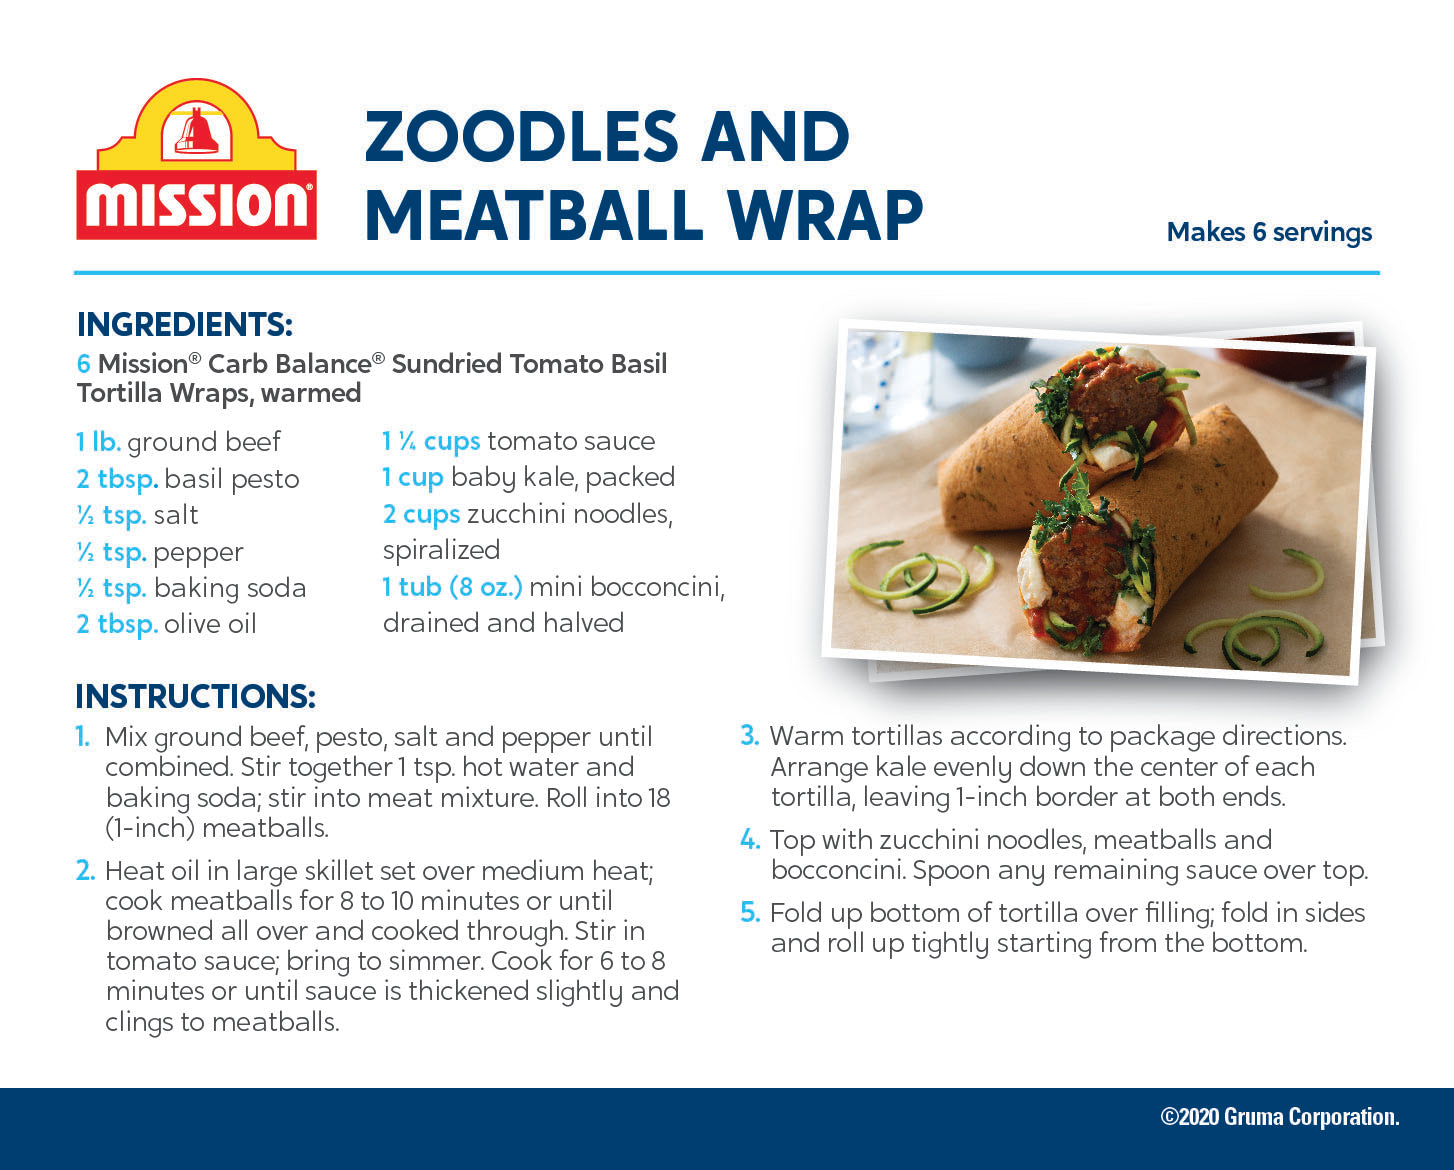 Sundried Tomato Basil: Meatballs and Zoodle recipe